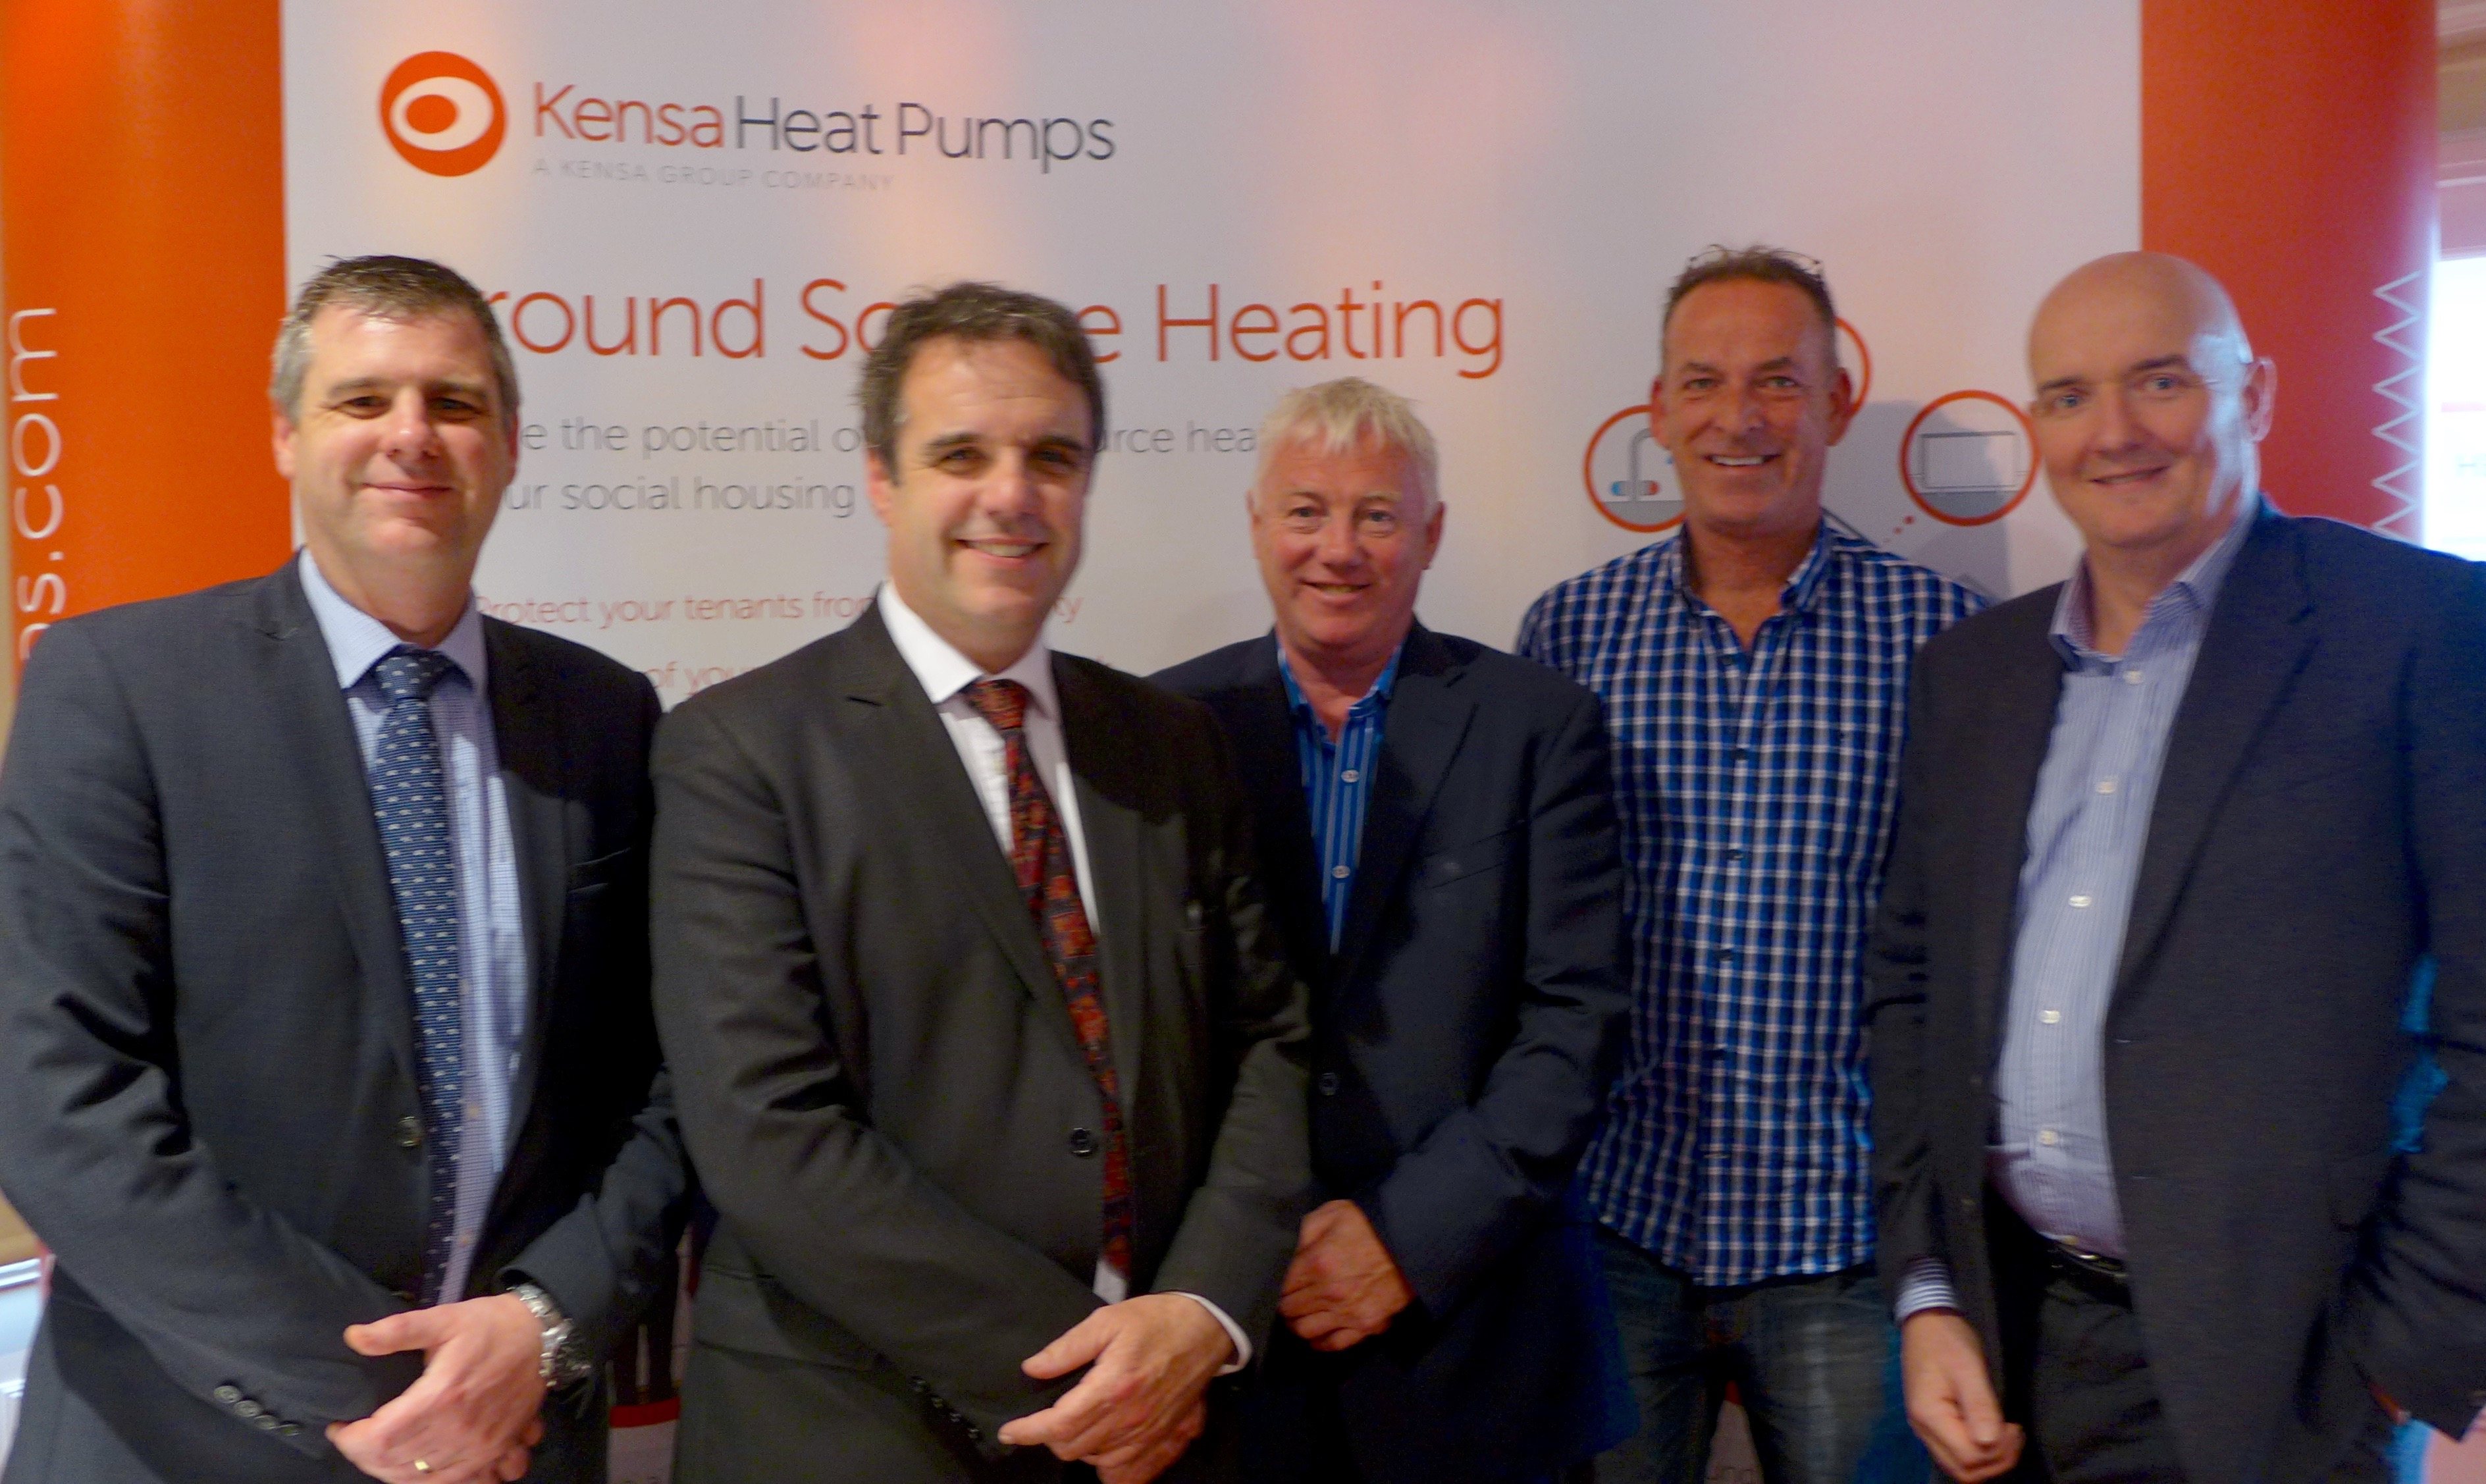 Chris Davis (Kensa Heat Pumps) / Lord Taylor of Goss Moor (National Housing Federation) / David Greensmith (Carbon Savings Alliance) / Steve Grocock (Trent & Dove) / Simon Lomax (Kensa Heat Pumps)